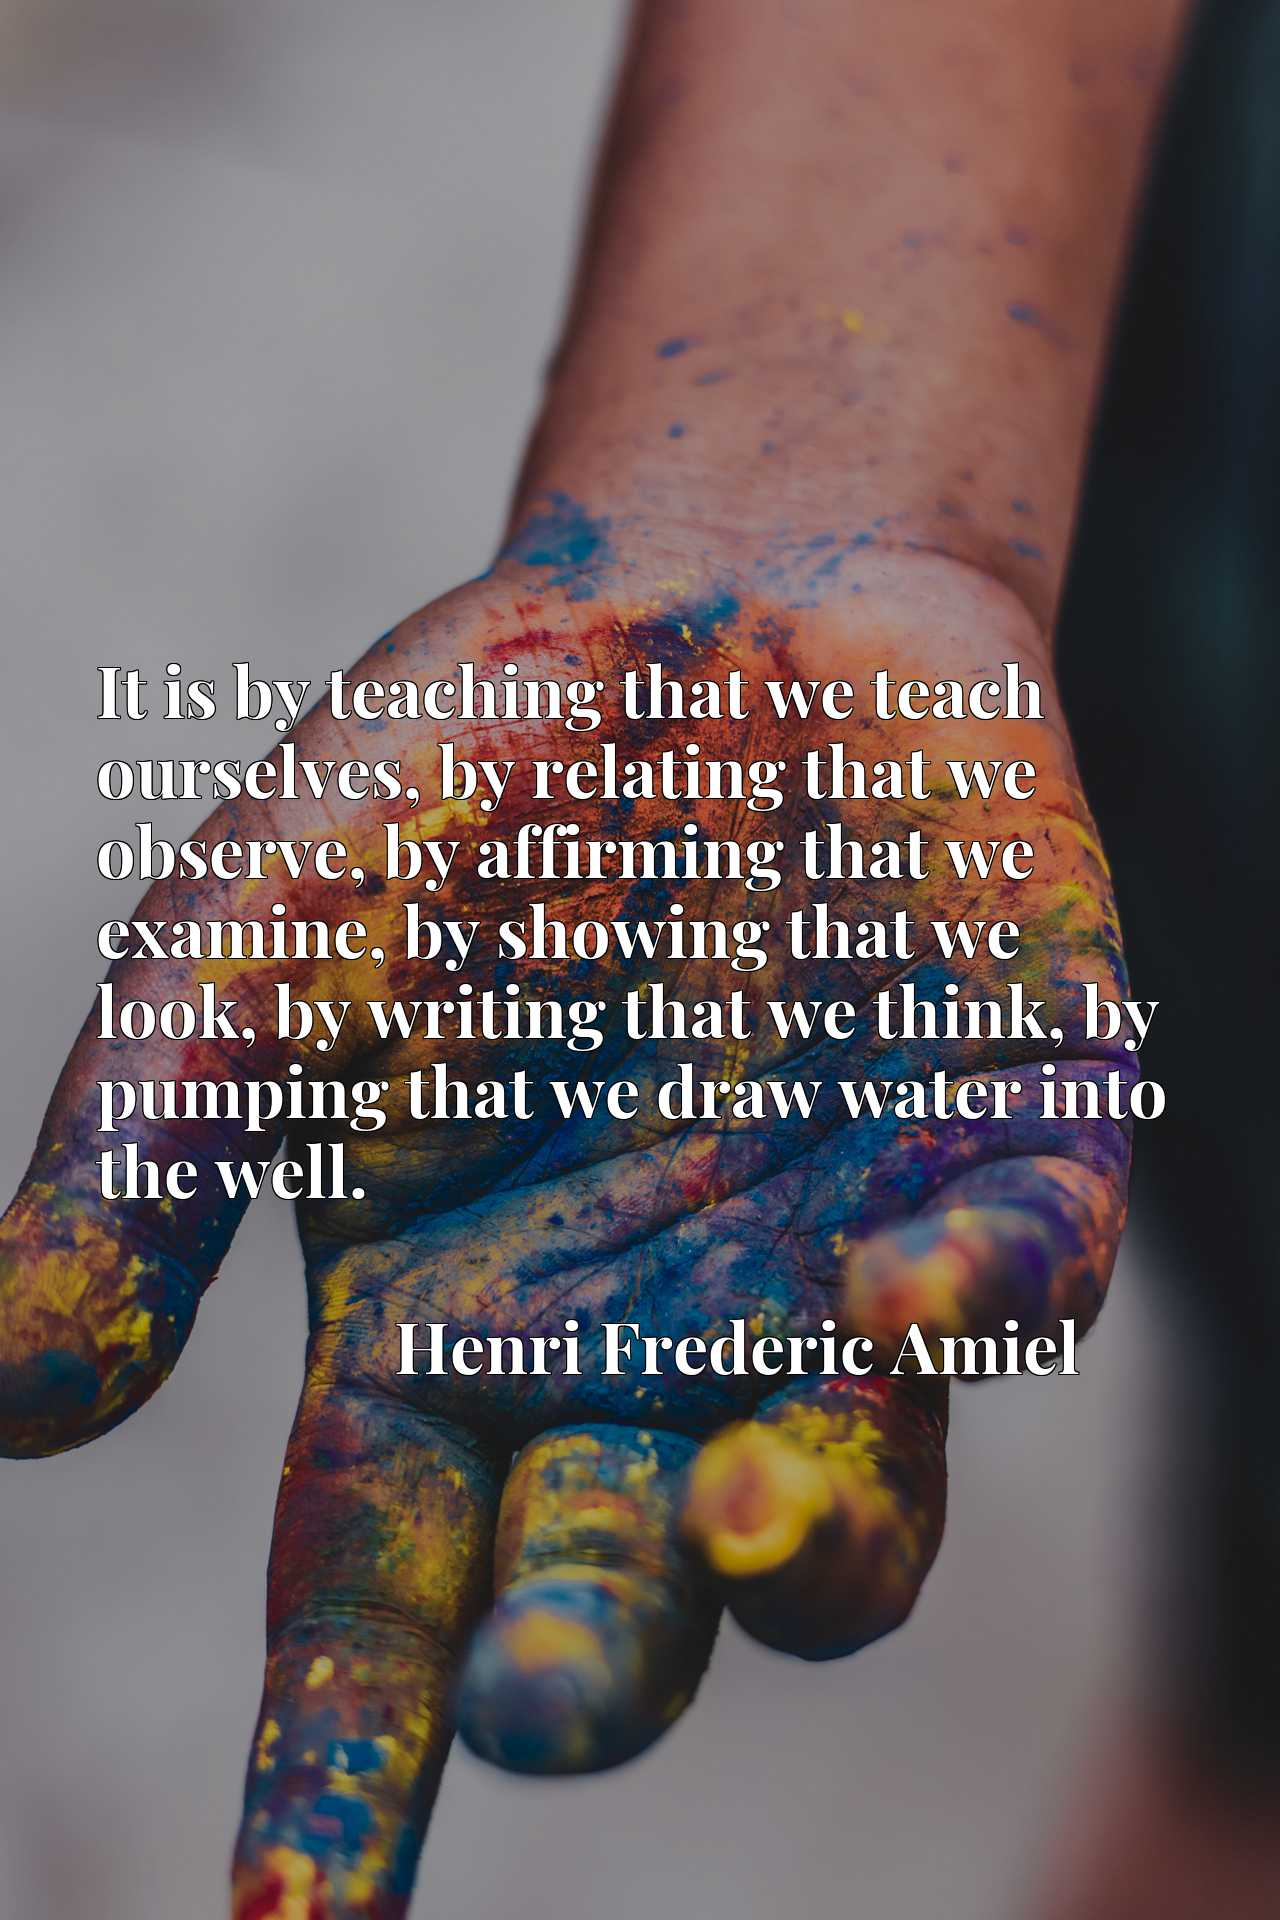 Quote Picture :It is by teaching that we teach ourselves, by relating that we observe, by affirming that we examine, by showing that we look, by writing that we think, by pumping that we draw water into the well.